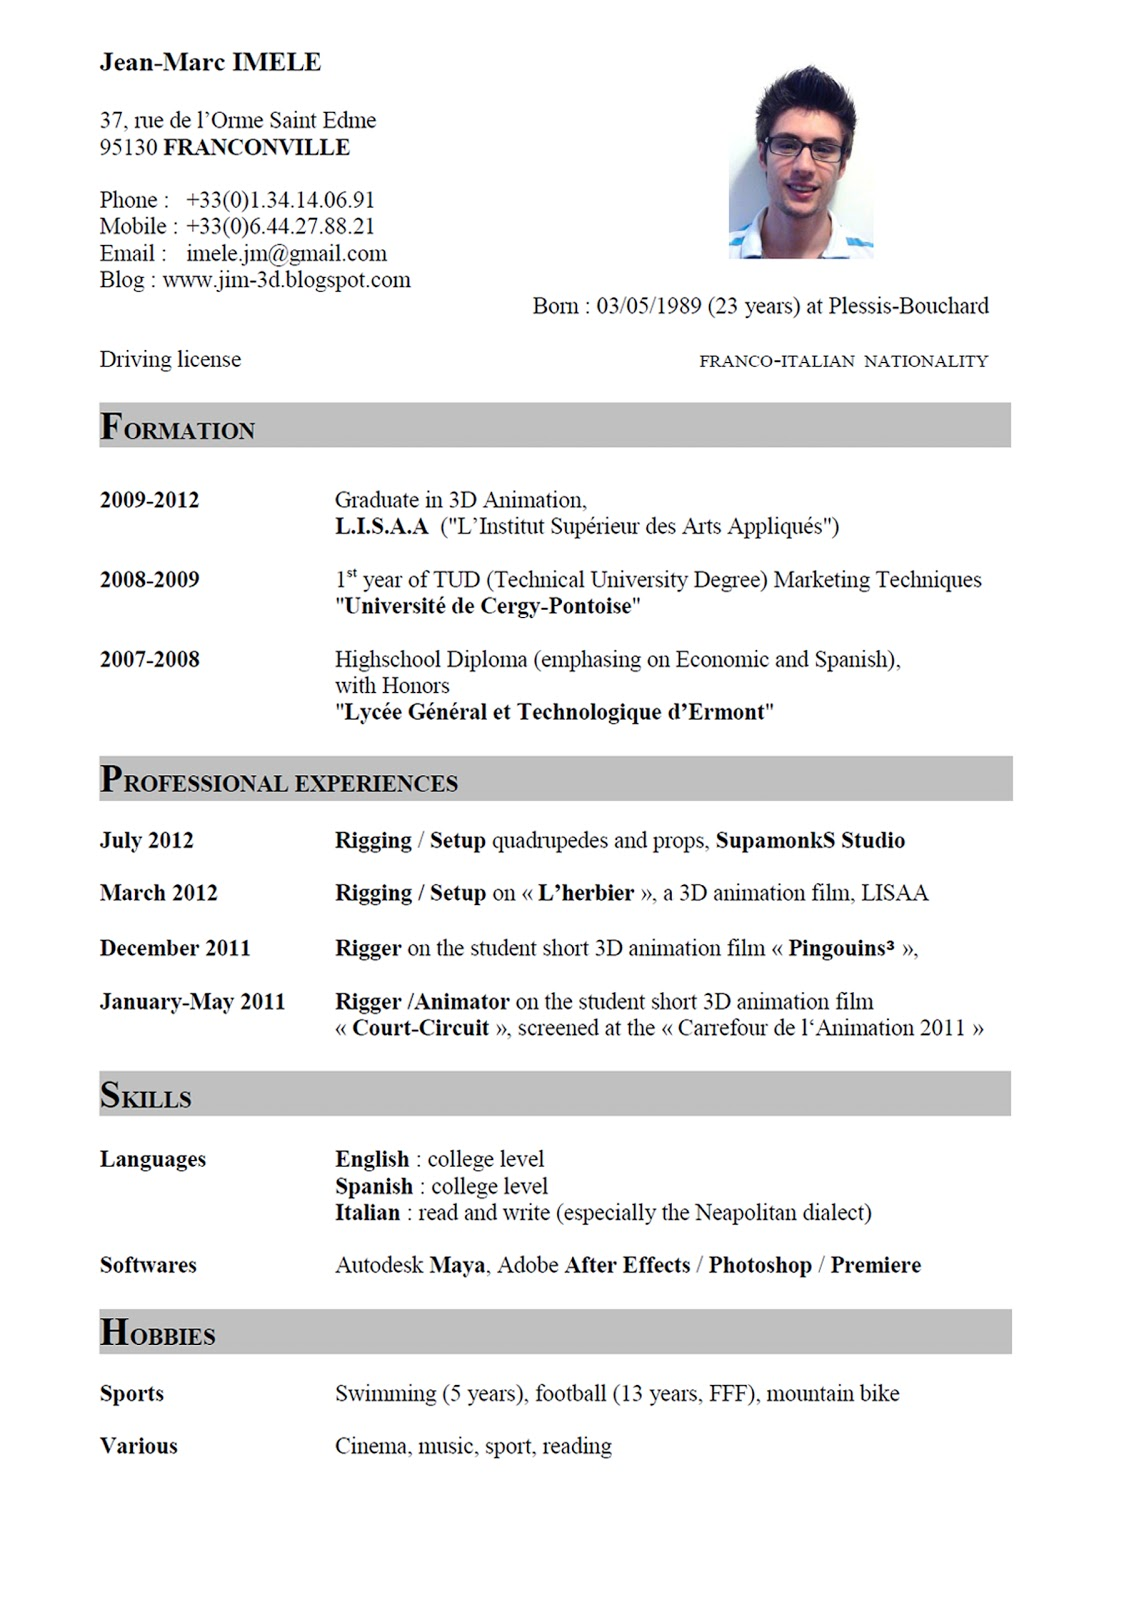 curriculum vitae example academic resume builder curriculum vitae example academic academic cv example teacher professor how to do a curriculum vitae in